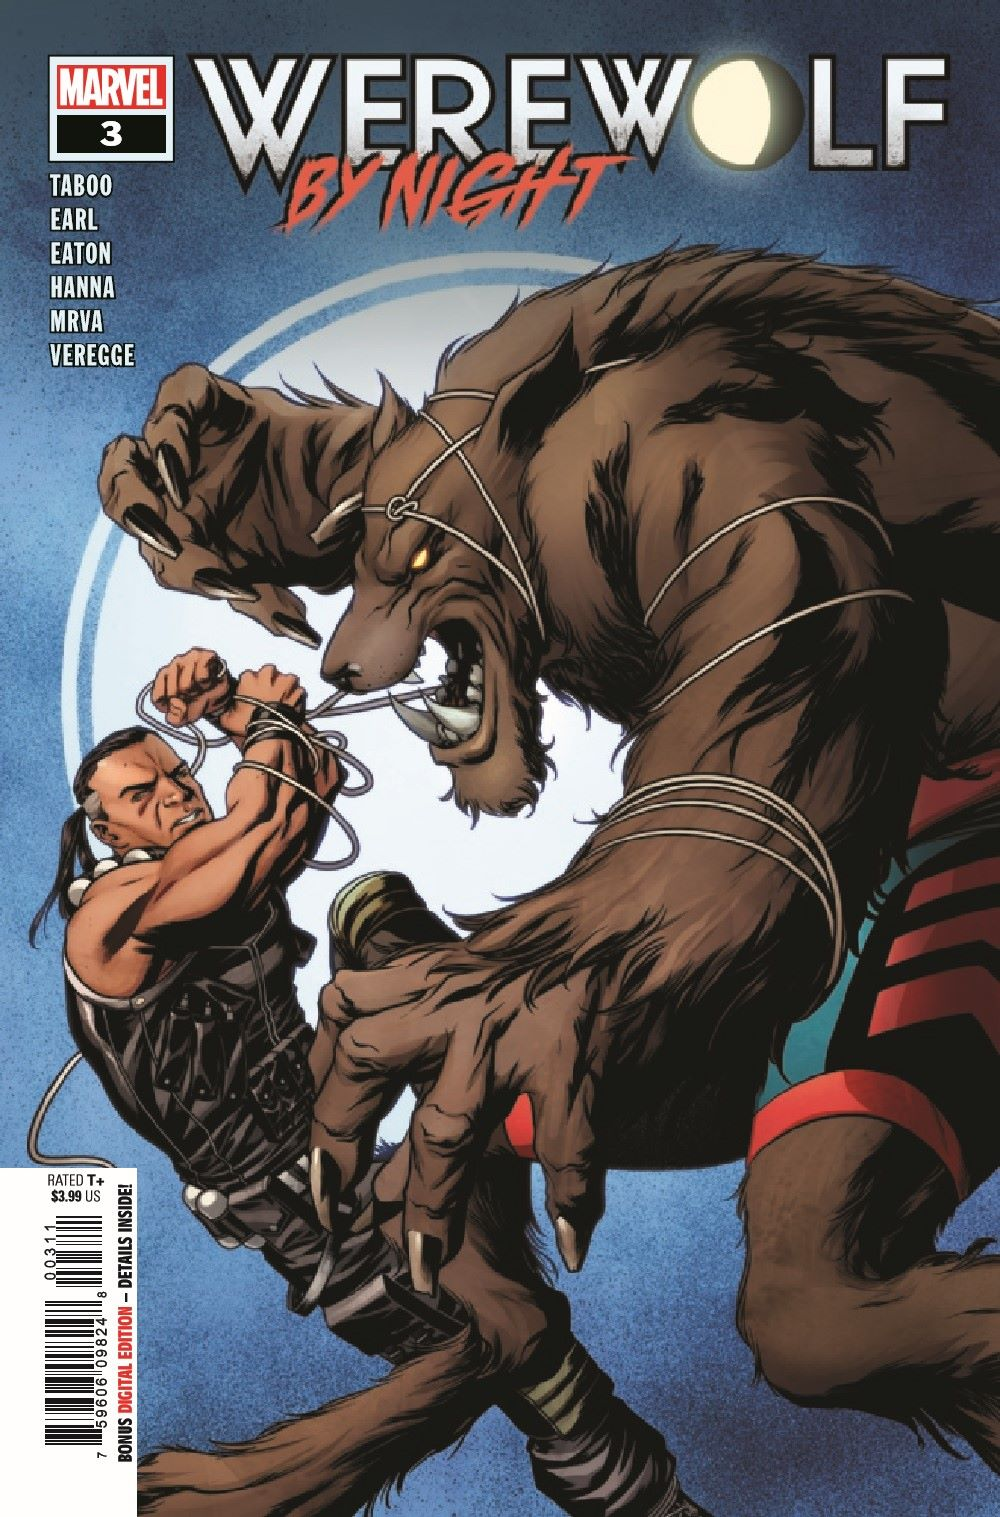 WBN2020003_Preview-1 ComicList Previews: WEREWOLF BY NIGHT #3 (OF 4)